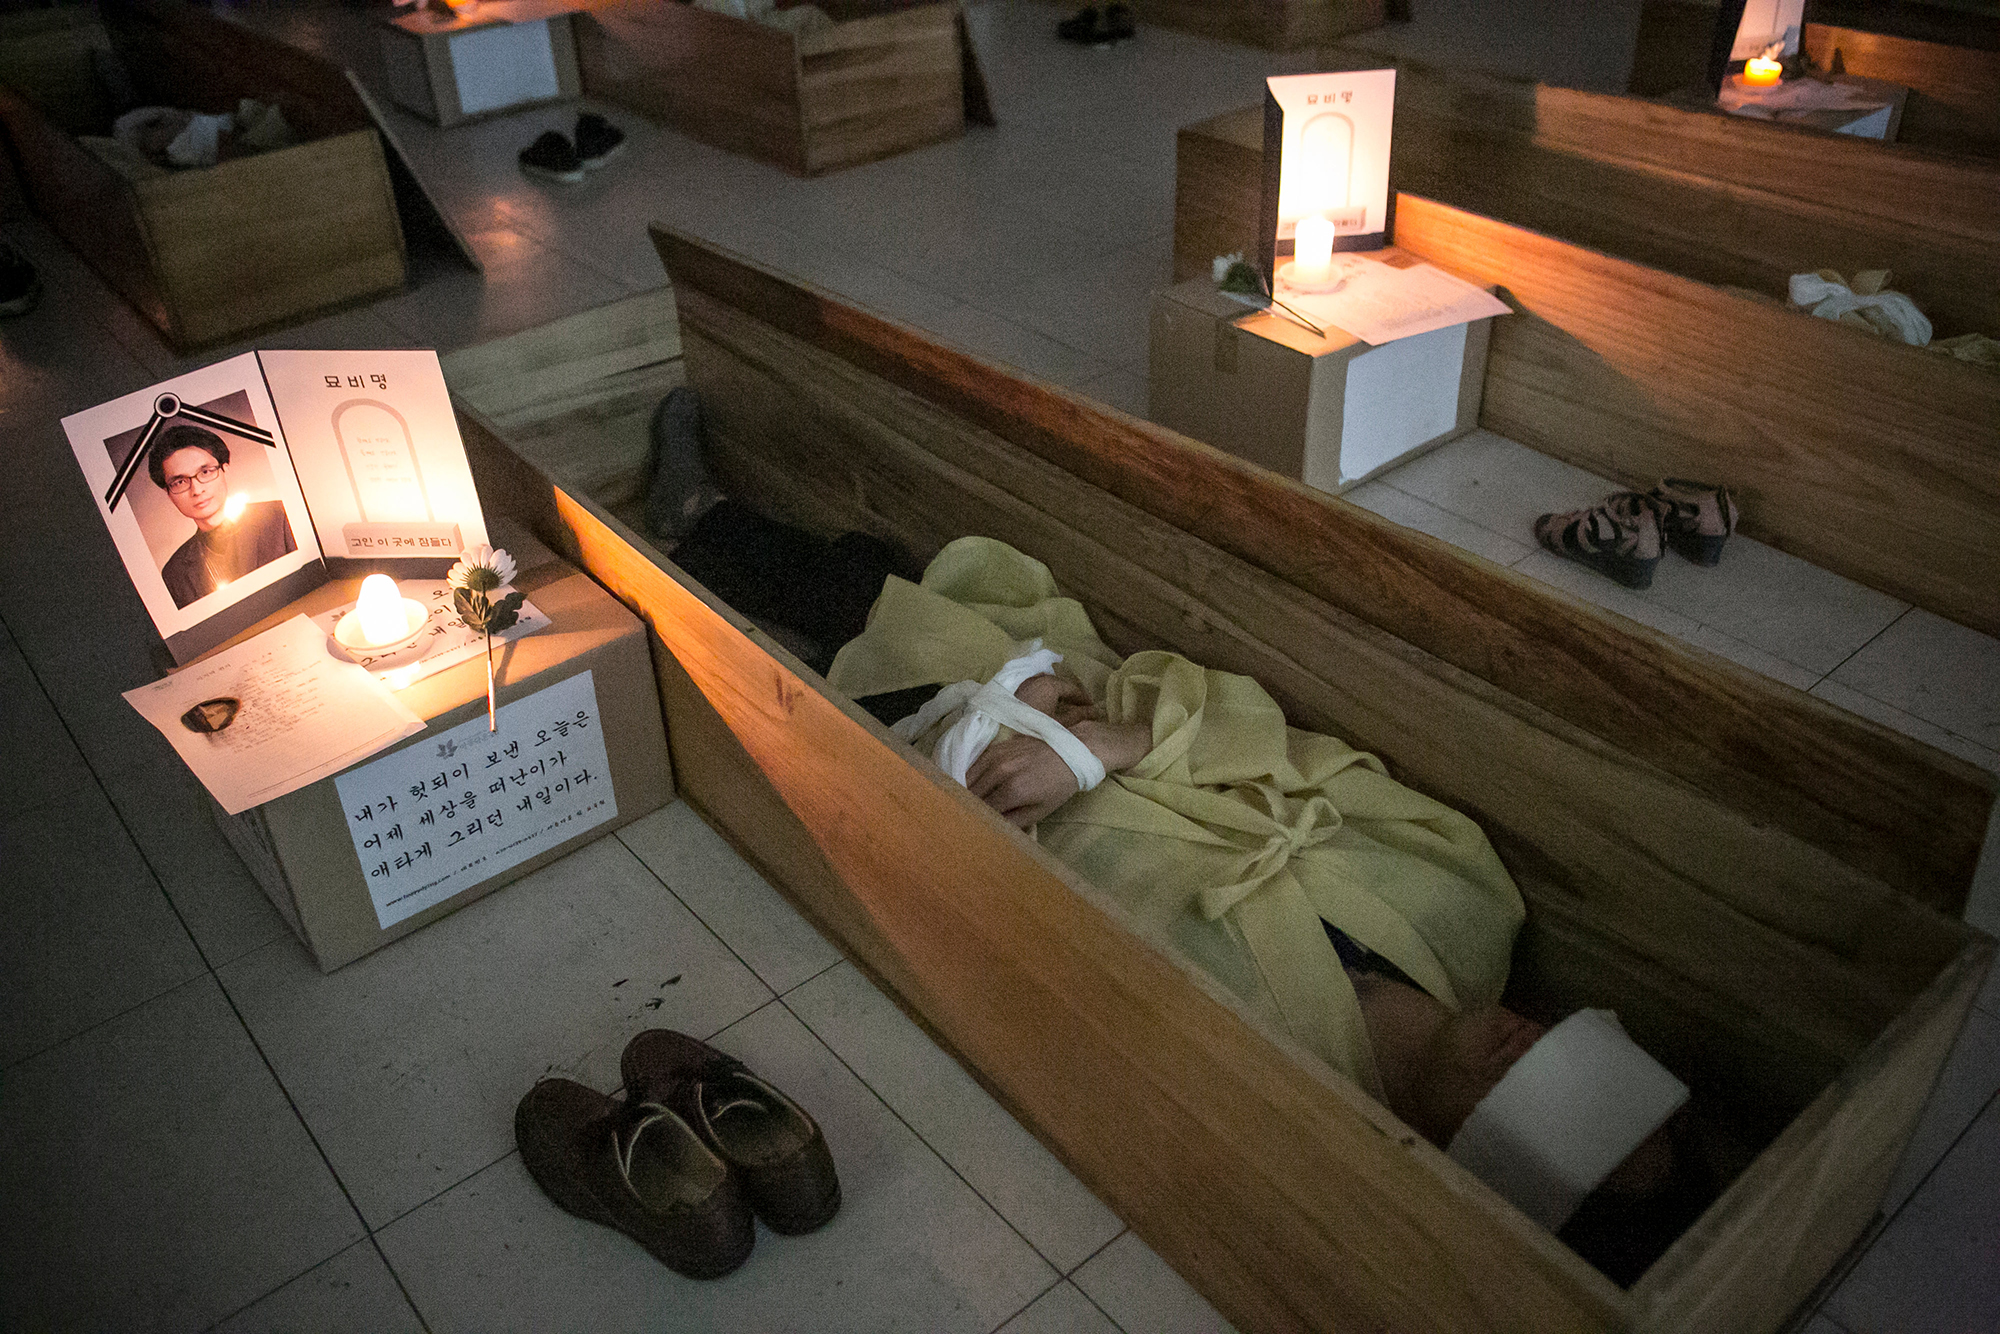 Participants wearing linen shrouds meditate and reflect on their lives as they lie down in a coffin during a 'Death Experience/Fake Funeral' session